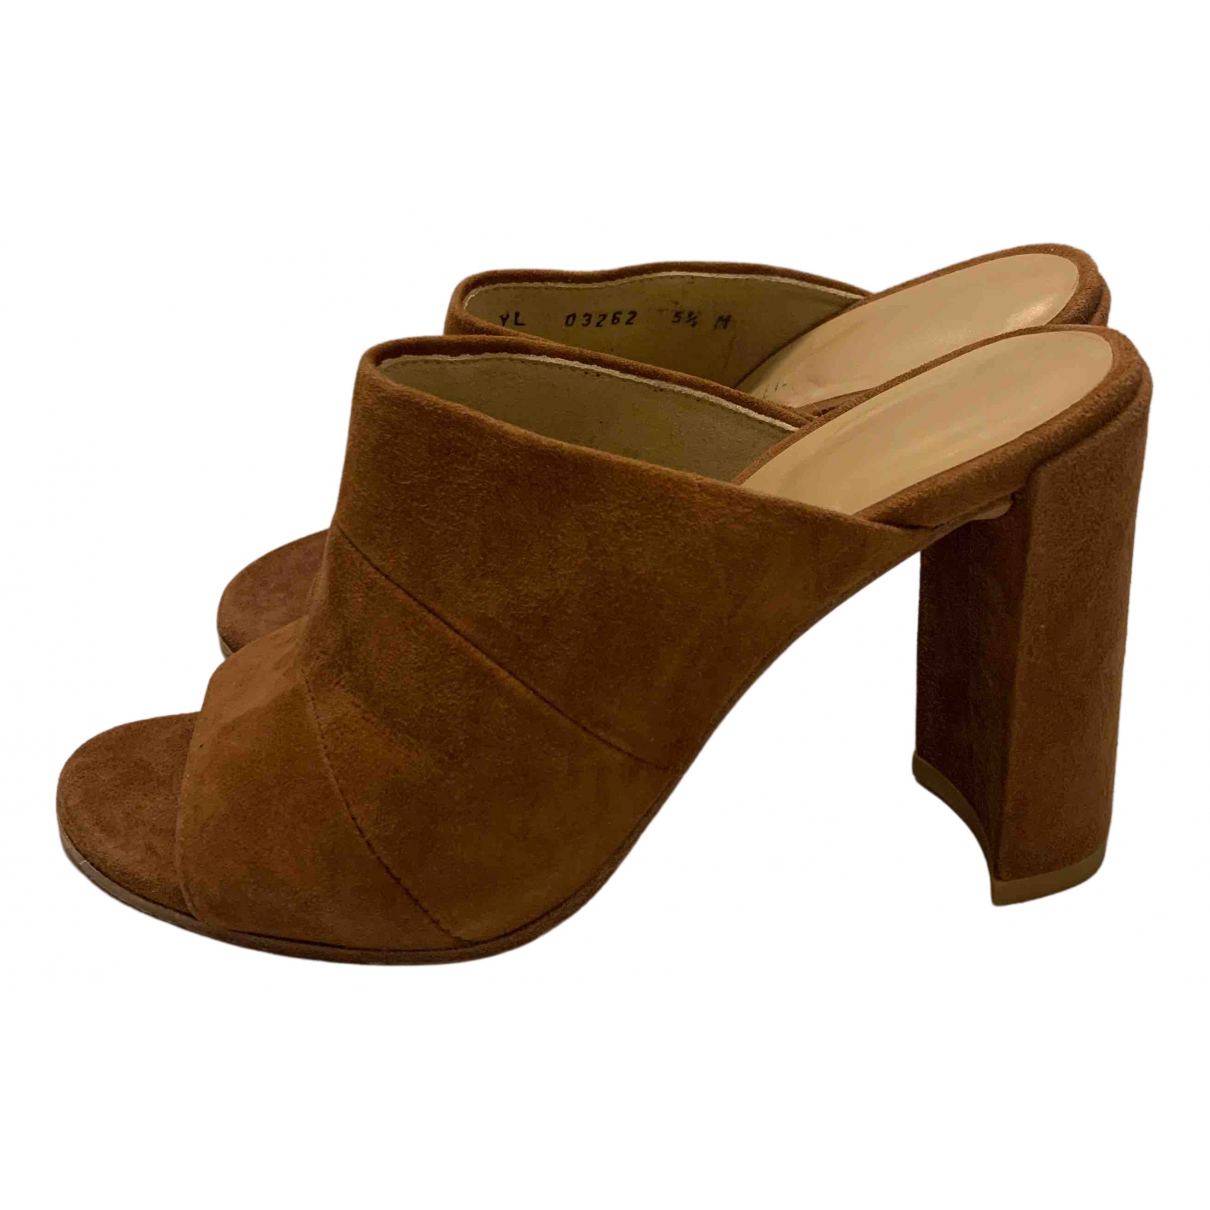 Stuart Weitzman N Brown Suede Mules & Clogs for Women 5.5 US